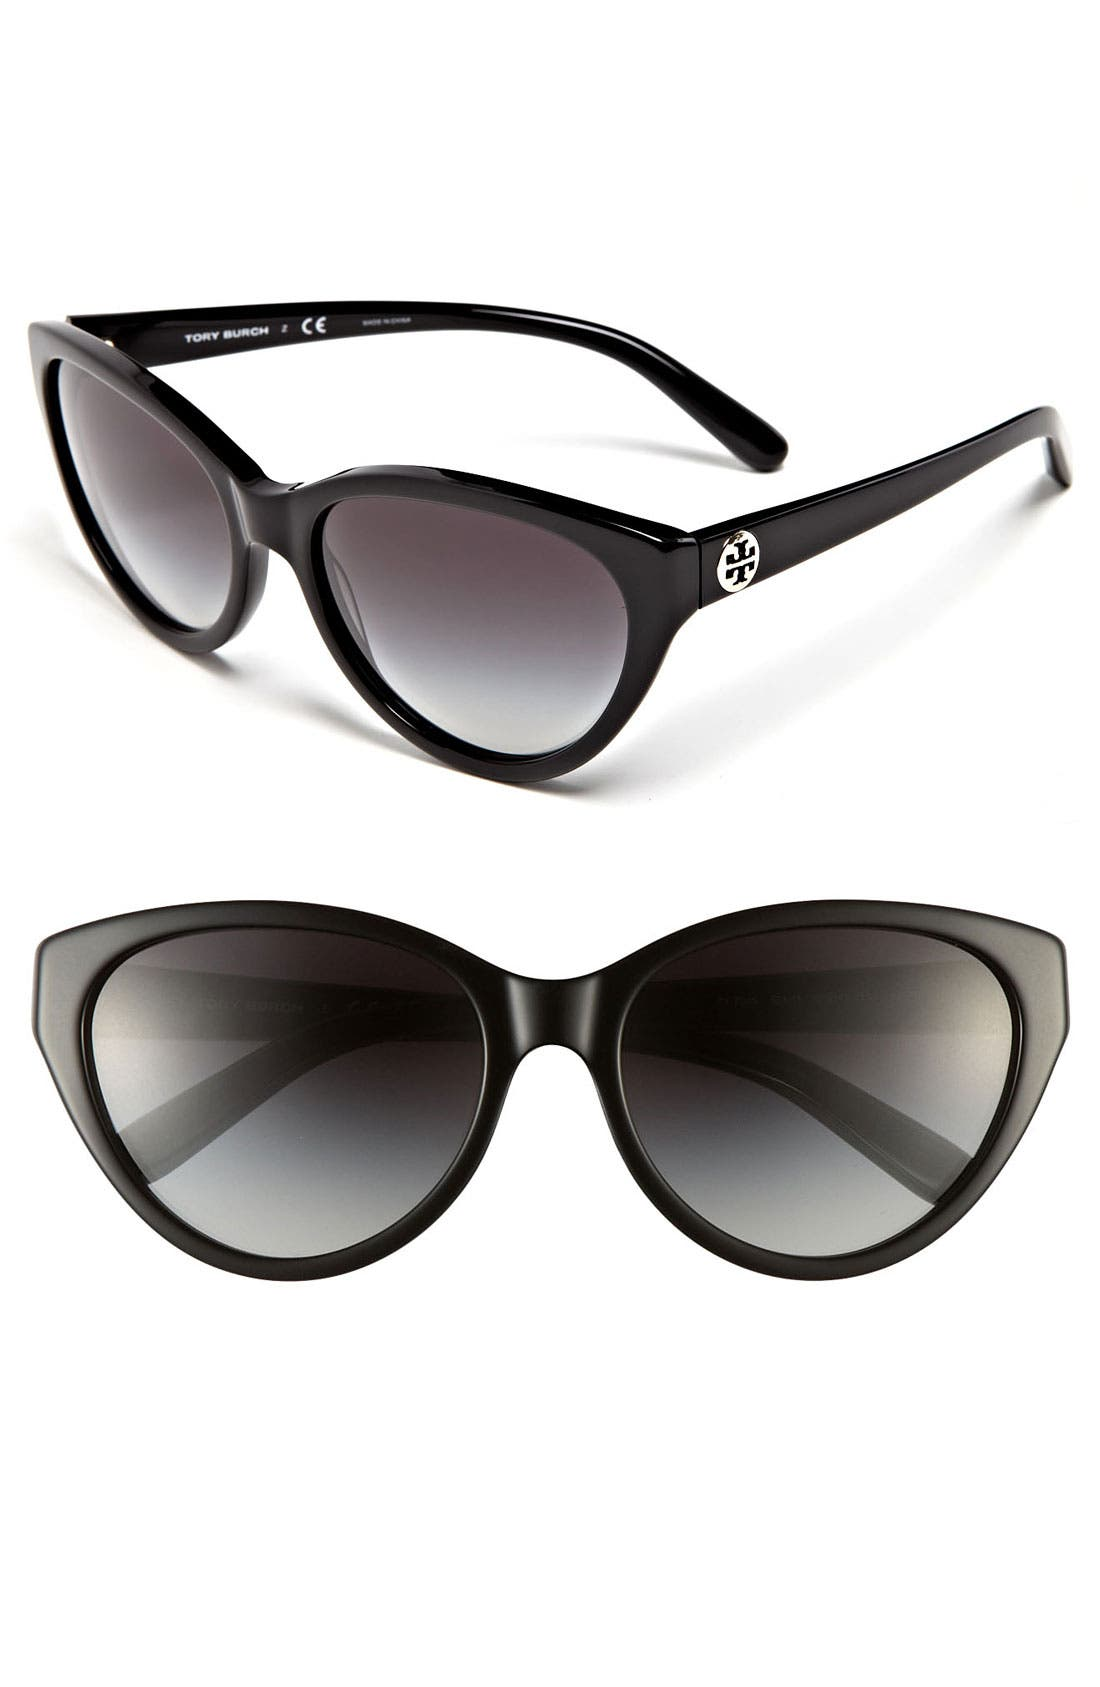 Main Image - Tory Burch 57mm Retro Sunglasses